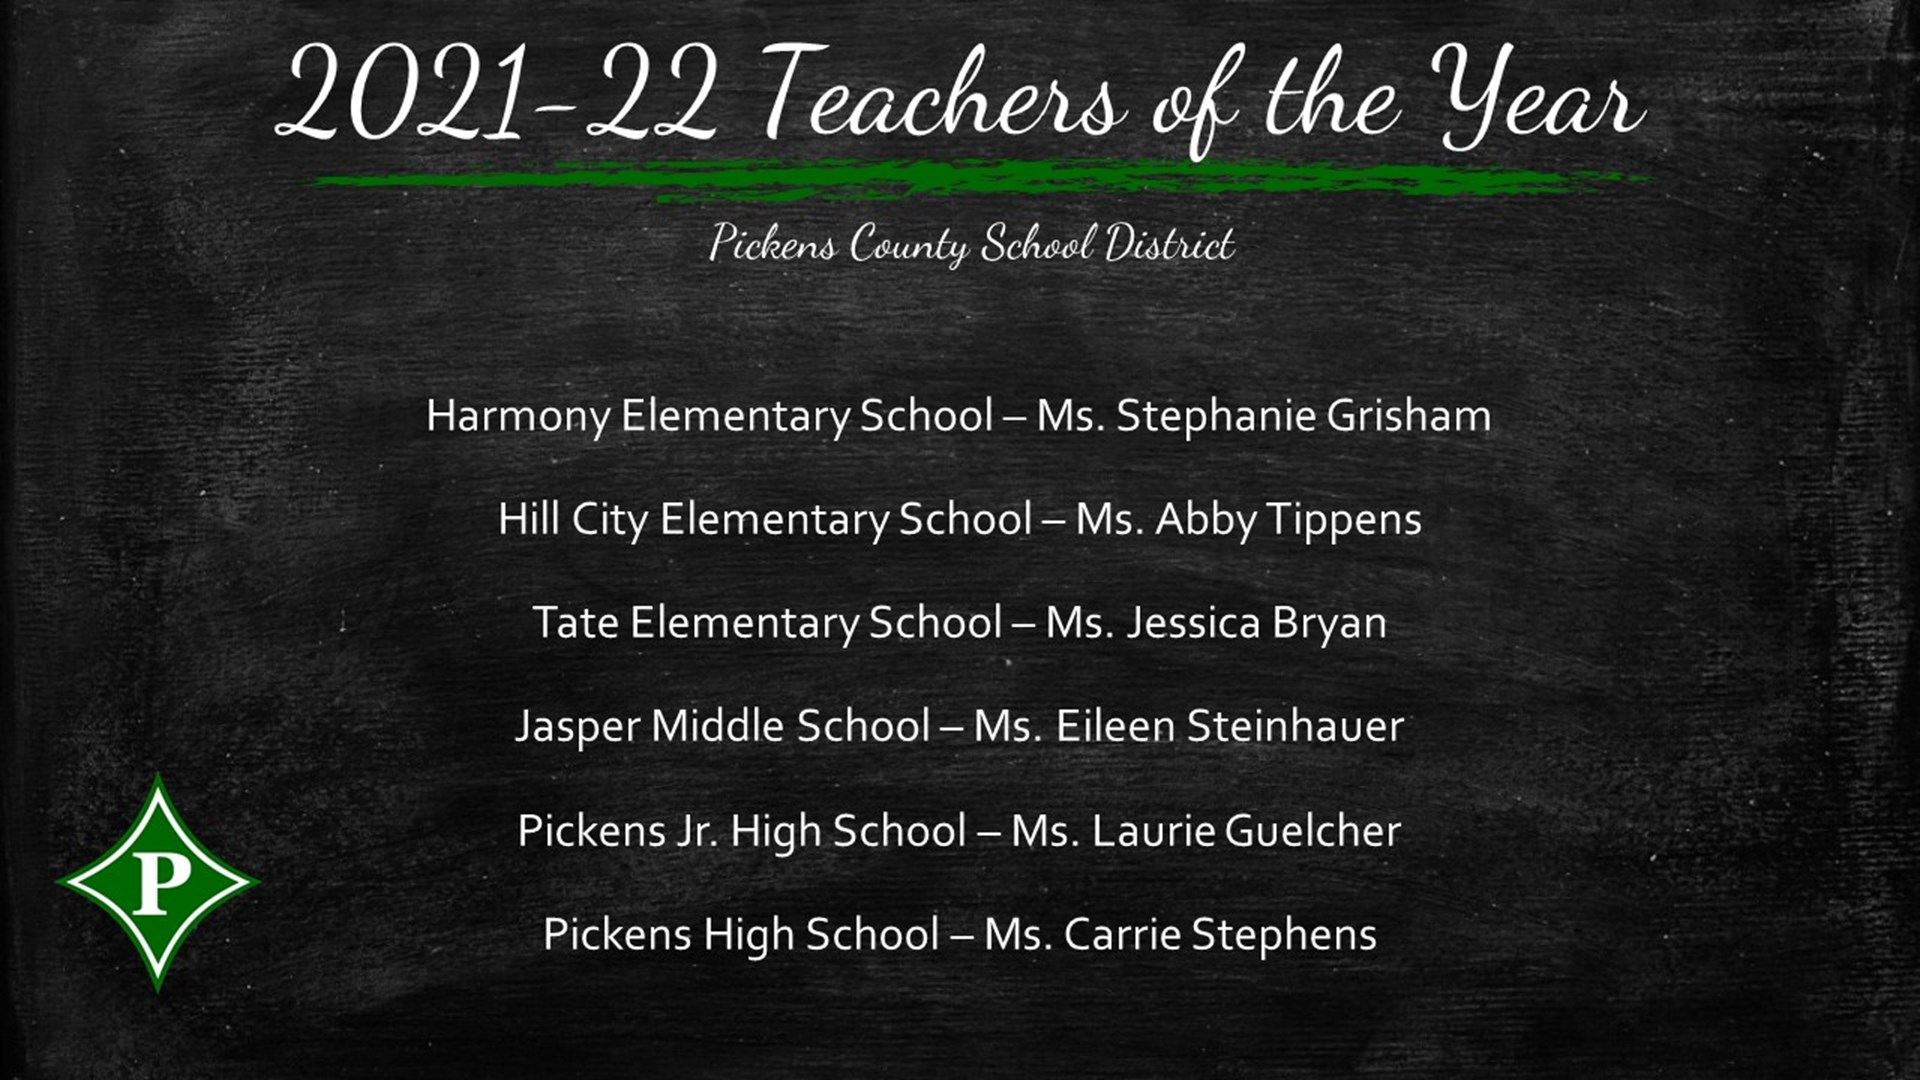 2021-2022 Teachers of the Year